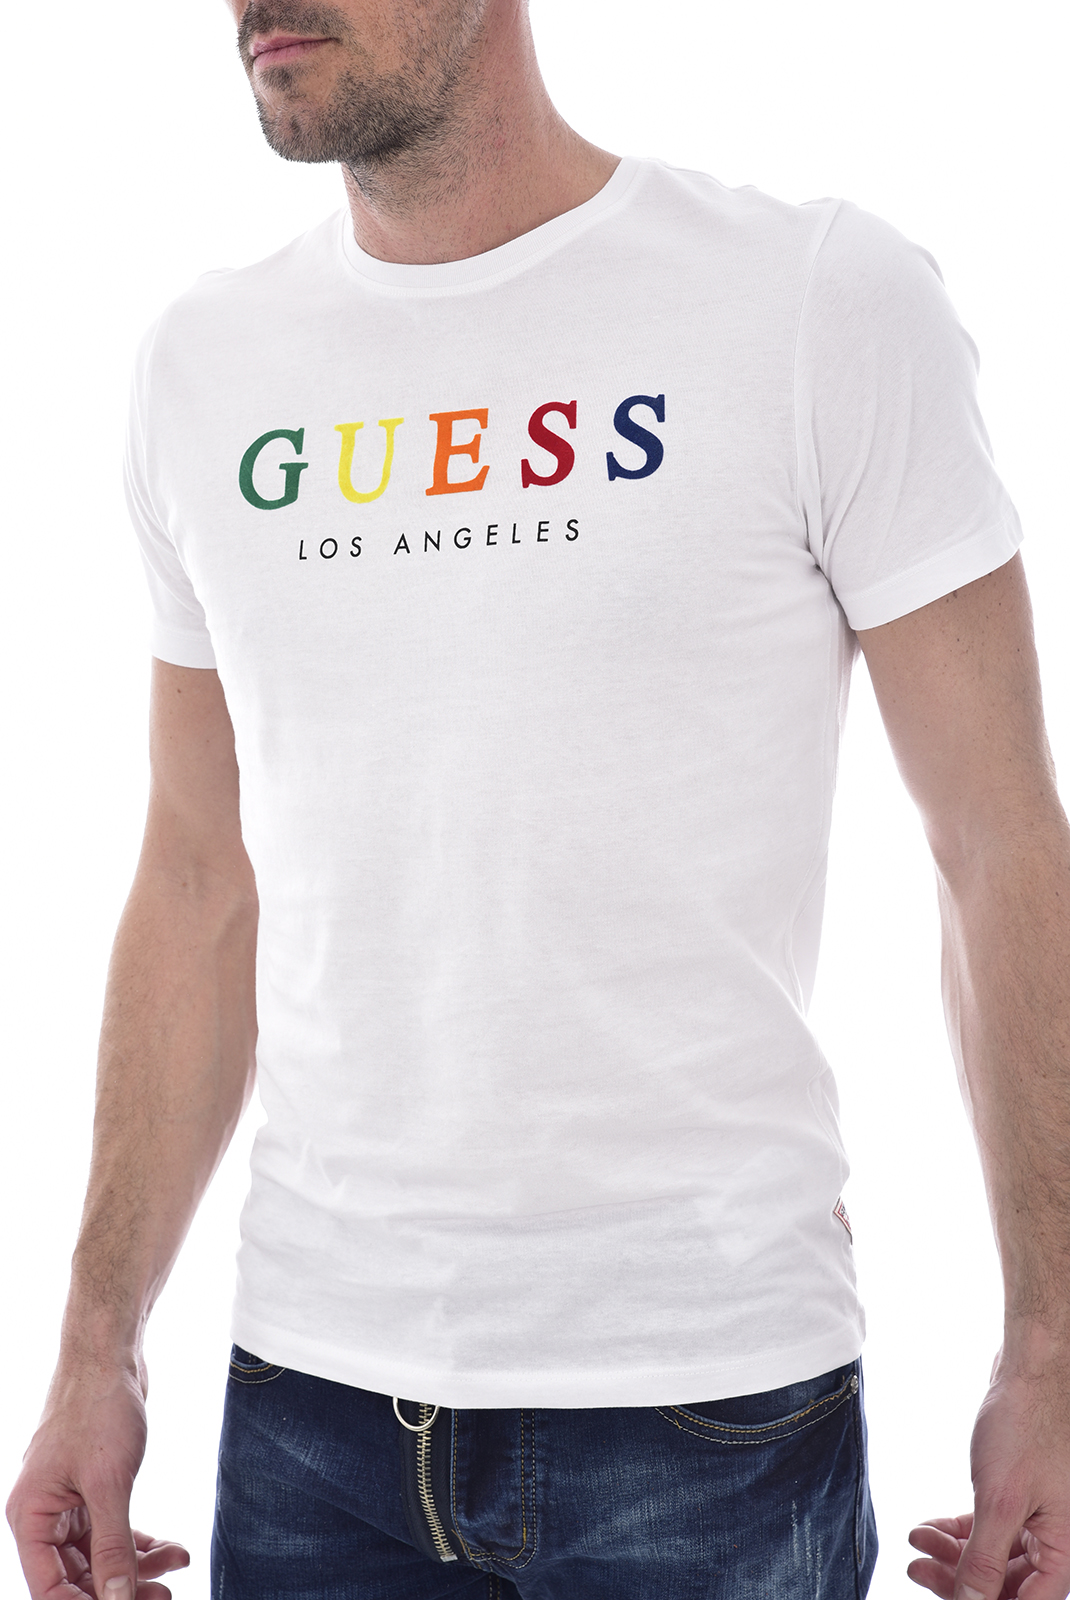 GUESS JEANS TEE-SHIRT BLANC M92I39 COLORFUL HOMME